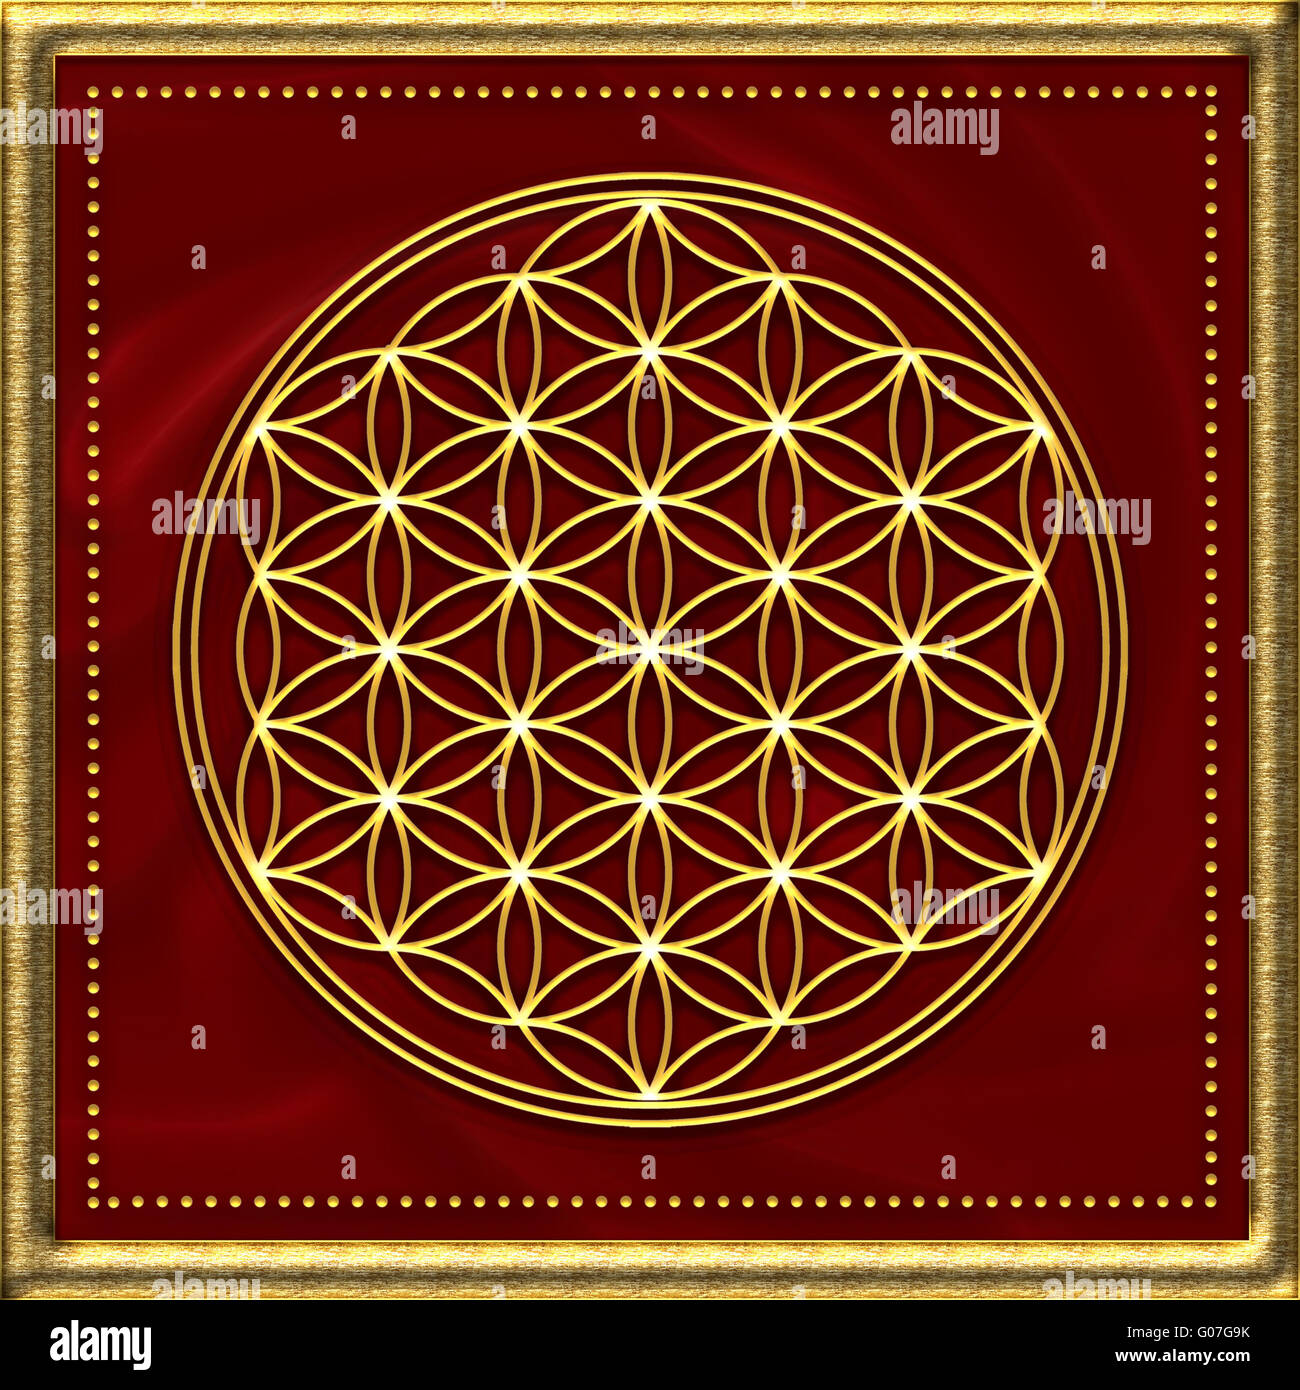 Flower of life - sacred geometry - golden - Stock Image